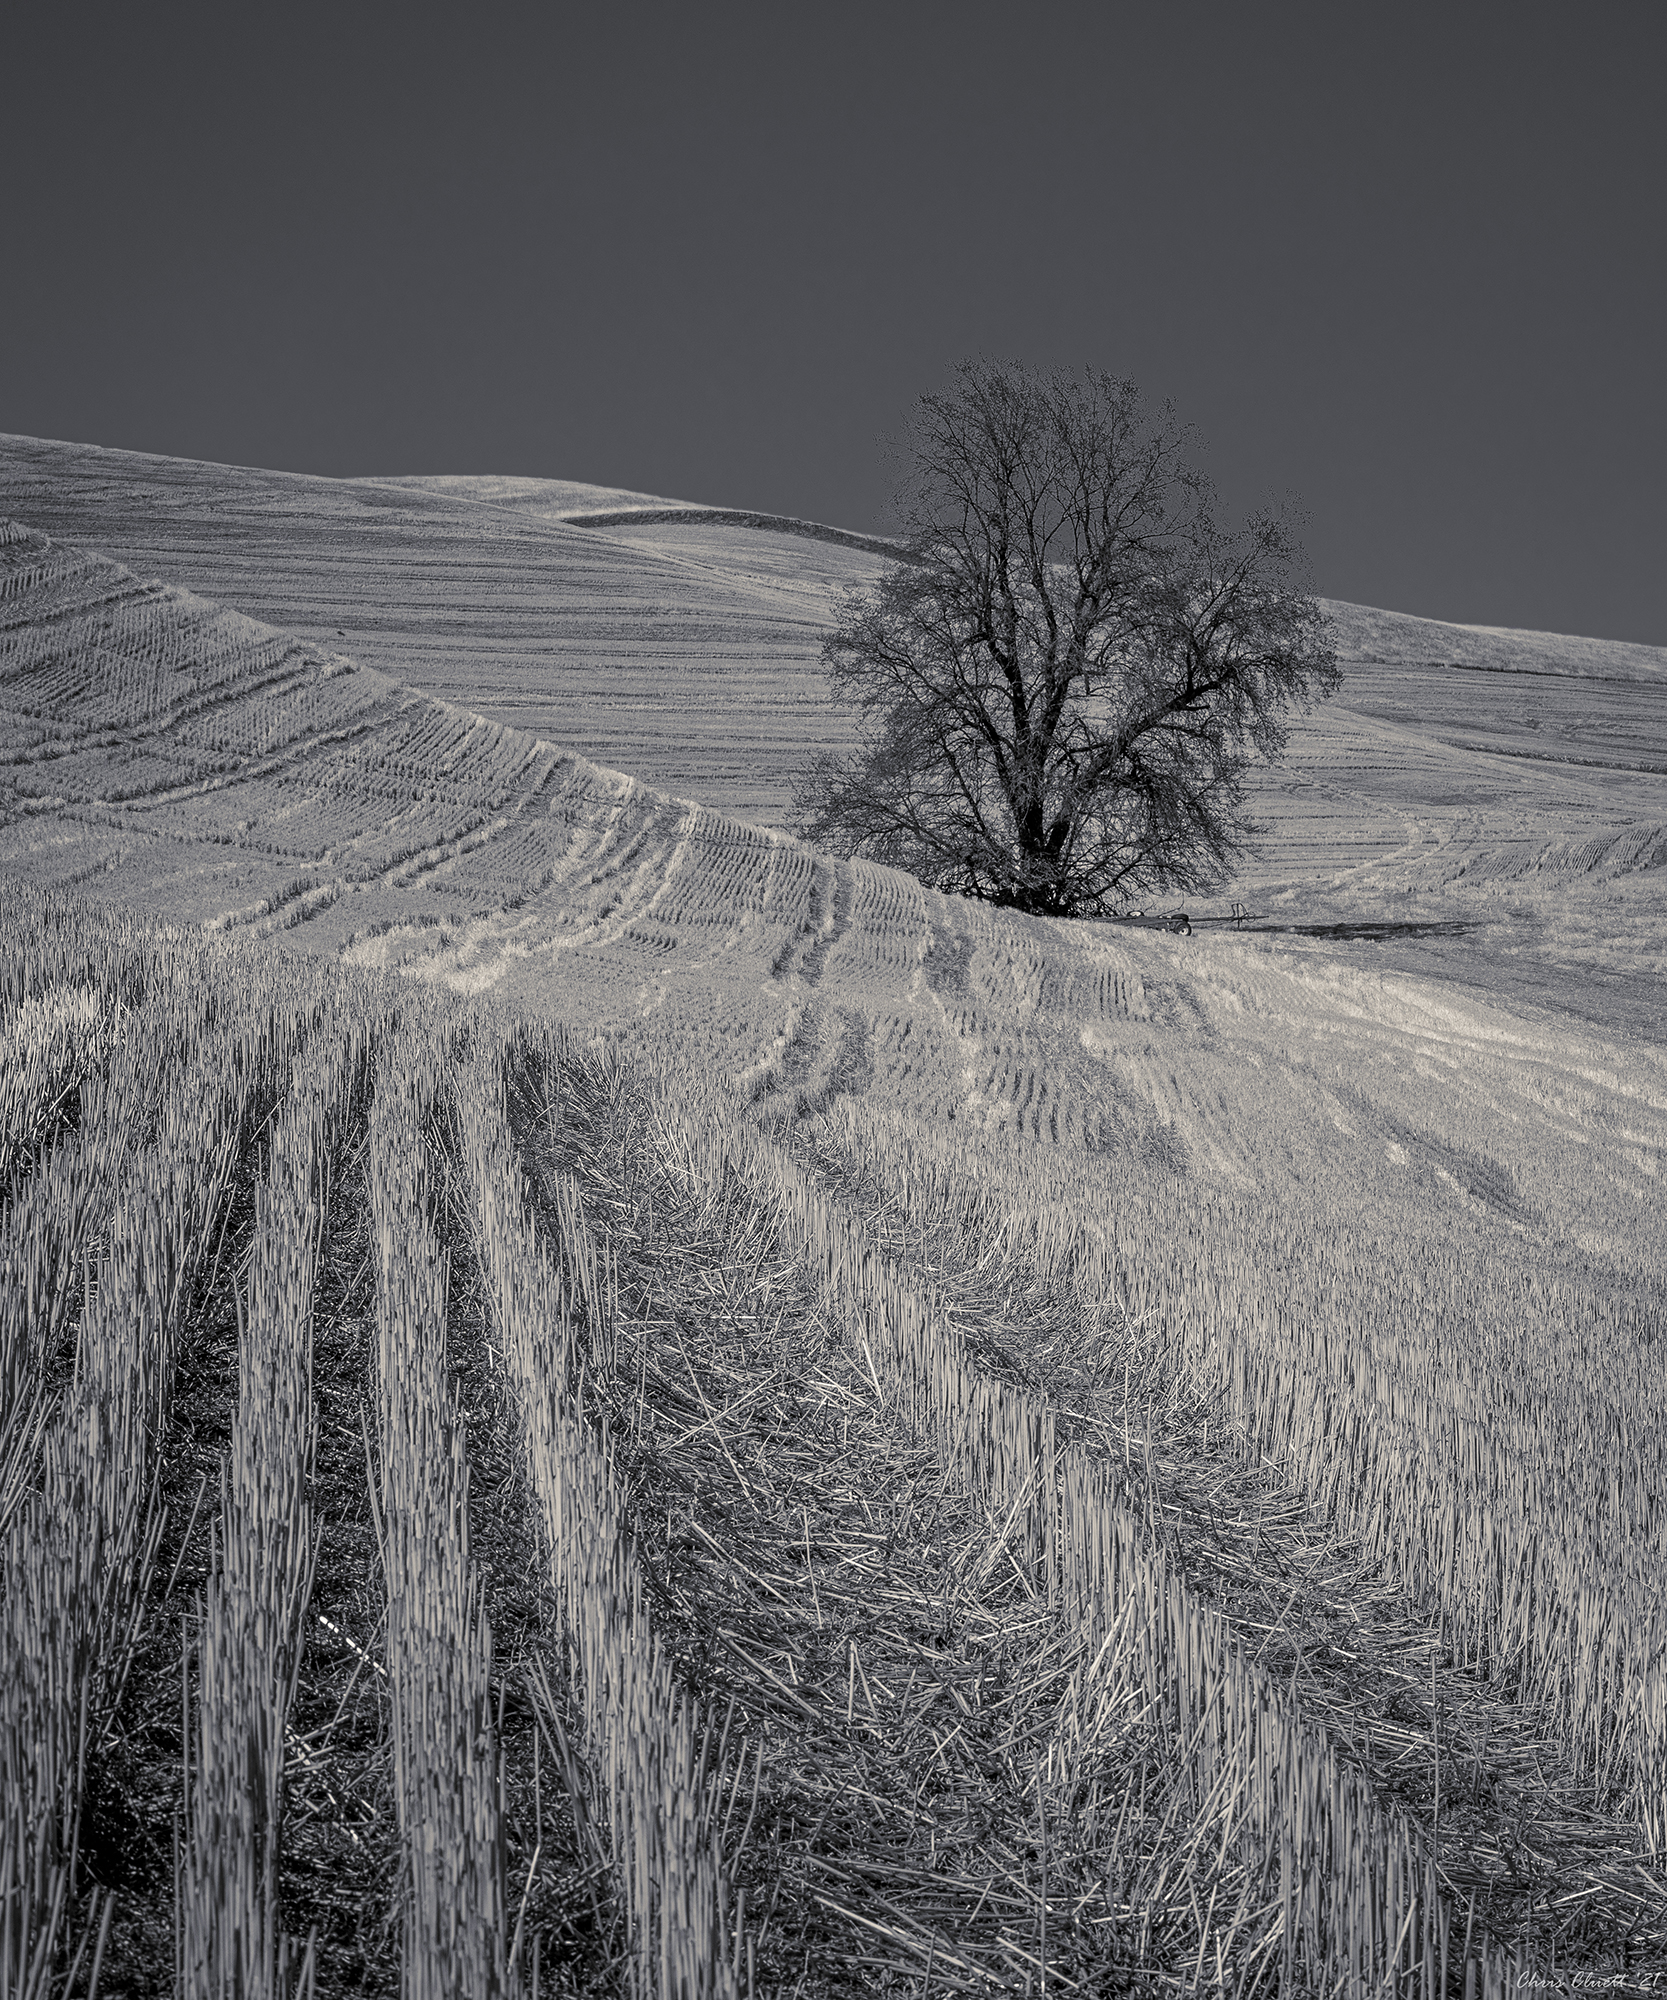 Strong lines in black and white offer a stark representation of this early period in the overall lifecycle of the agriculture of the Palouse.